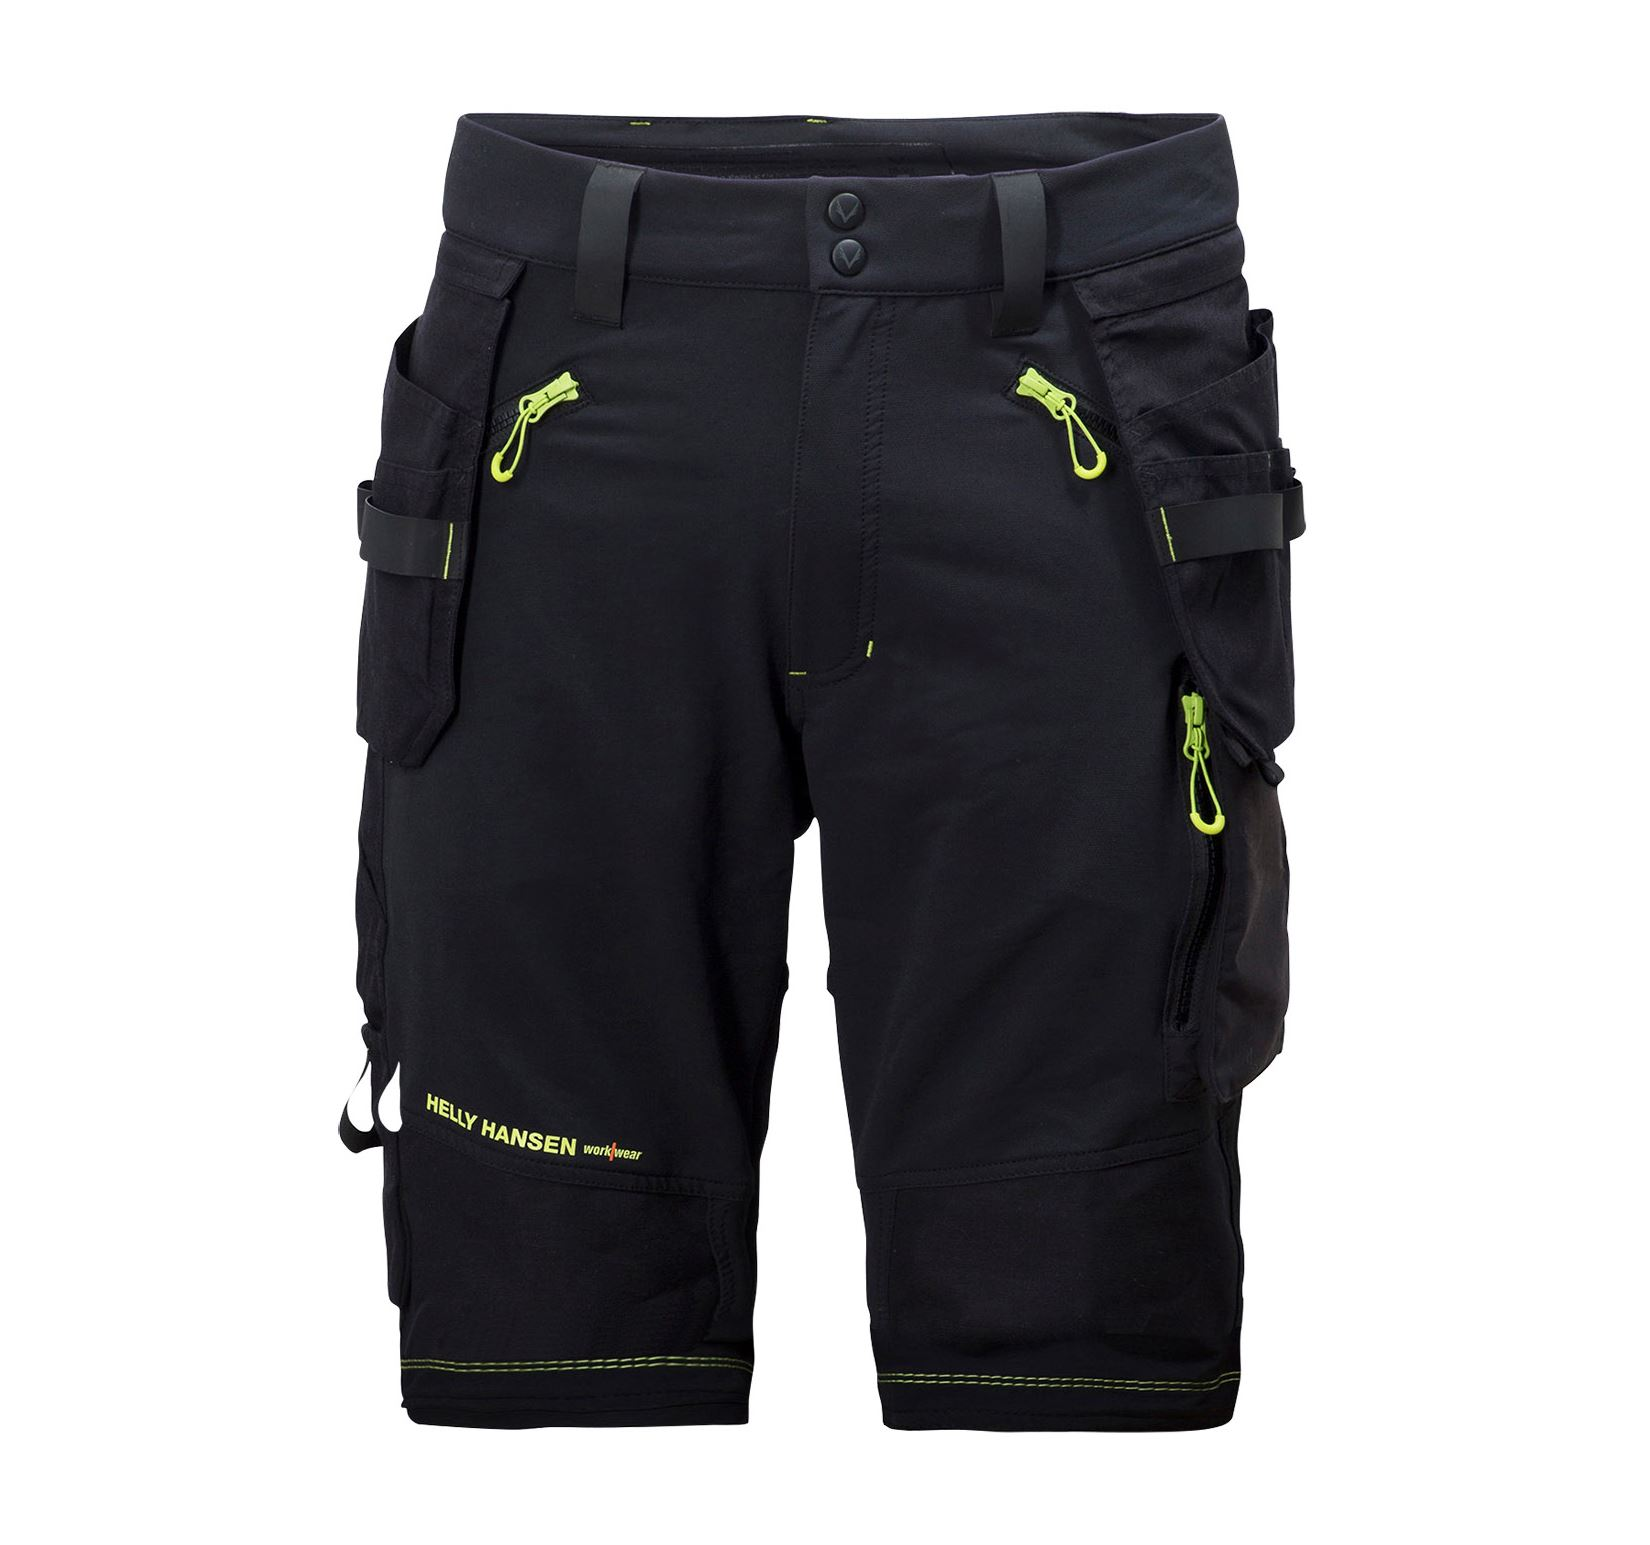 helly hansen workwear magni shorts fri frakt hos l nna sport. Black Bedroom Furniture Sets. Home Design Ideas